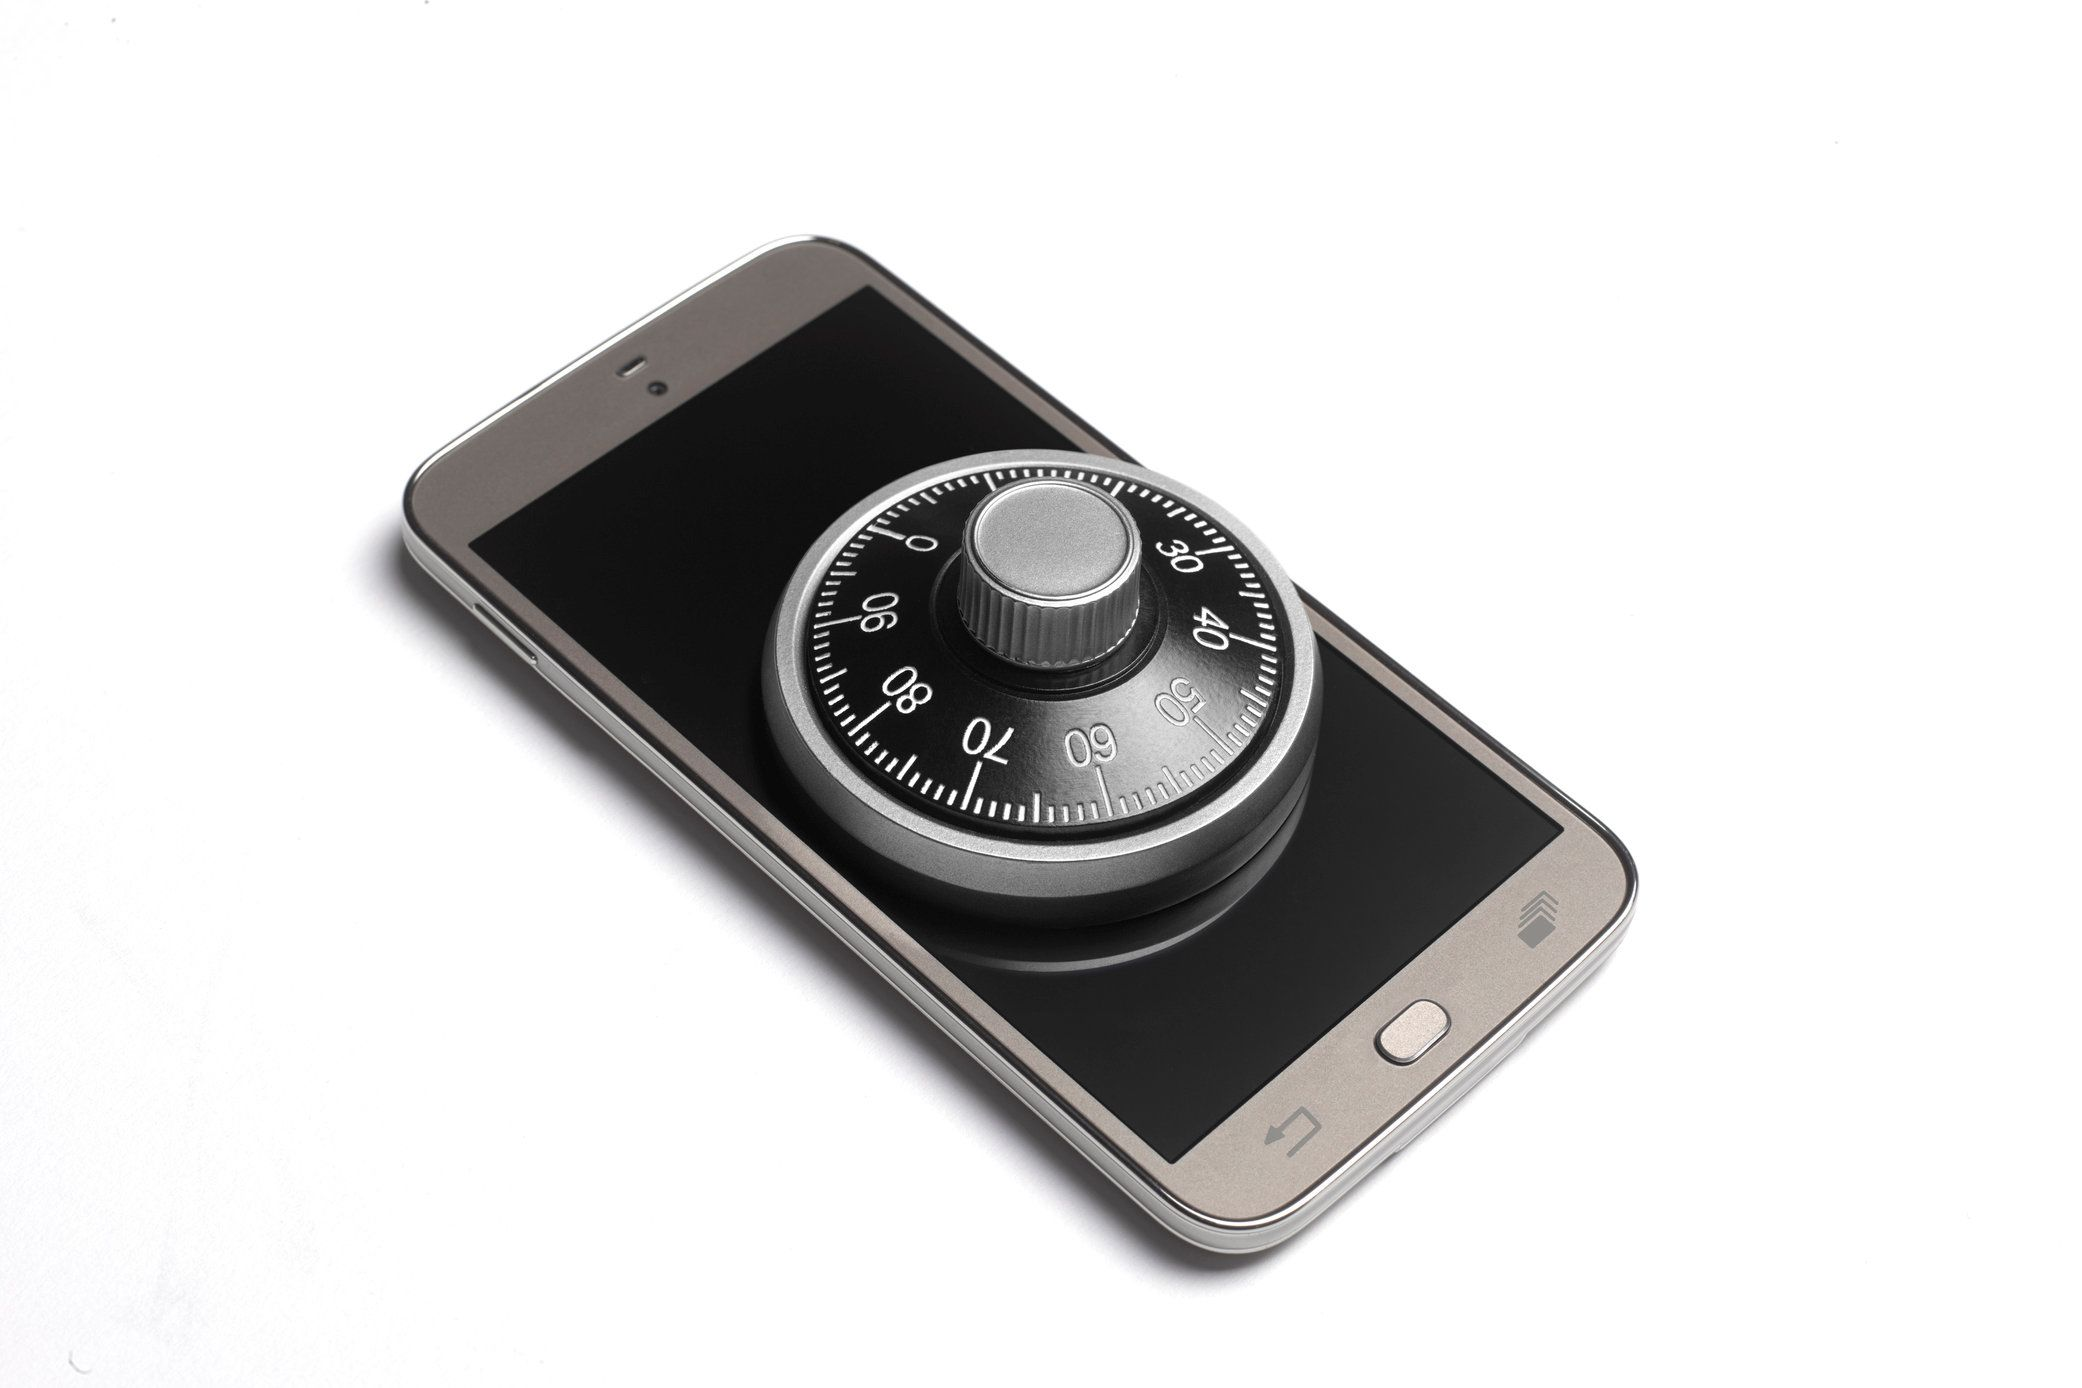 Locked cell phone